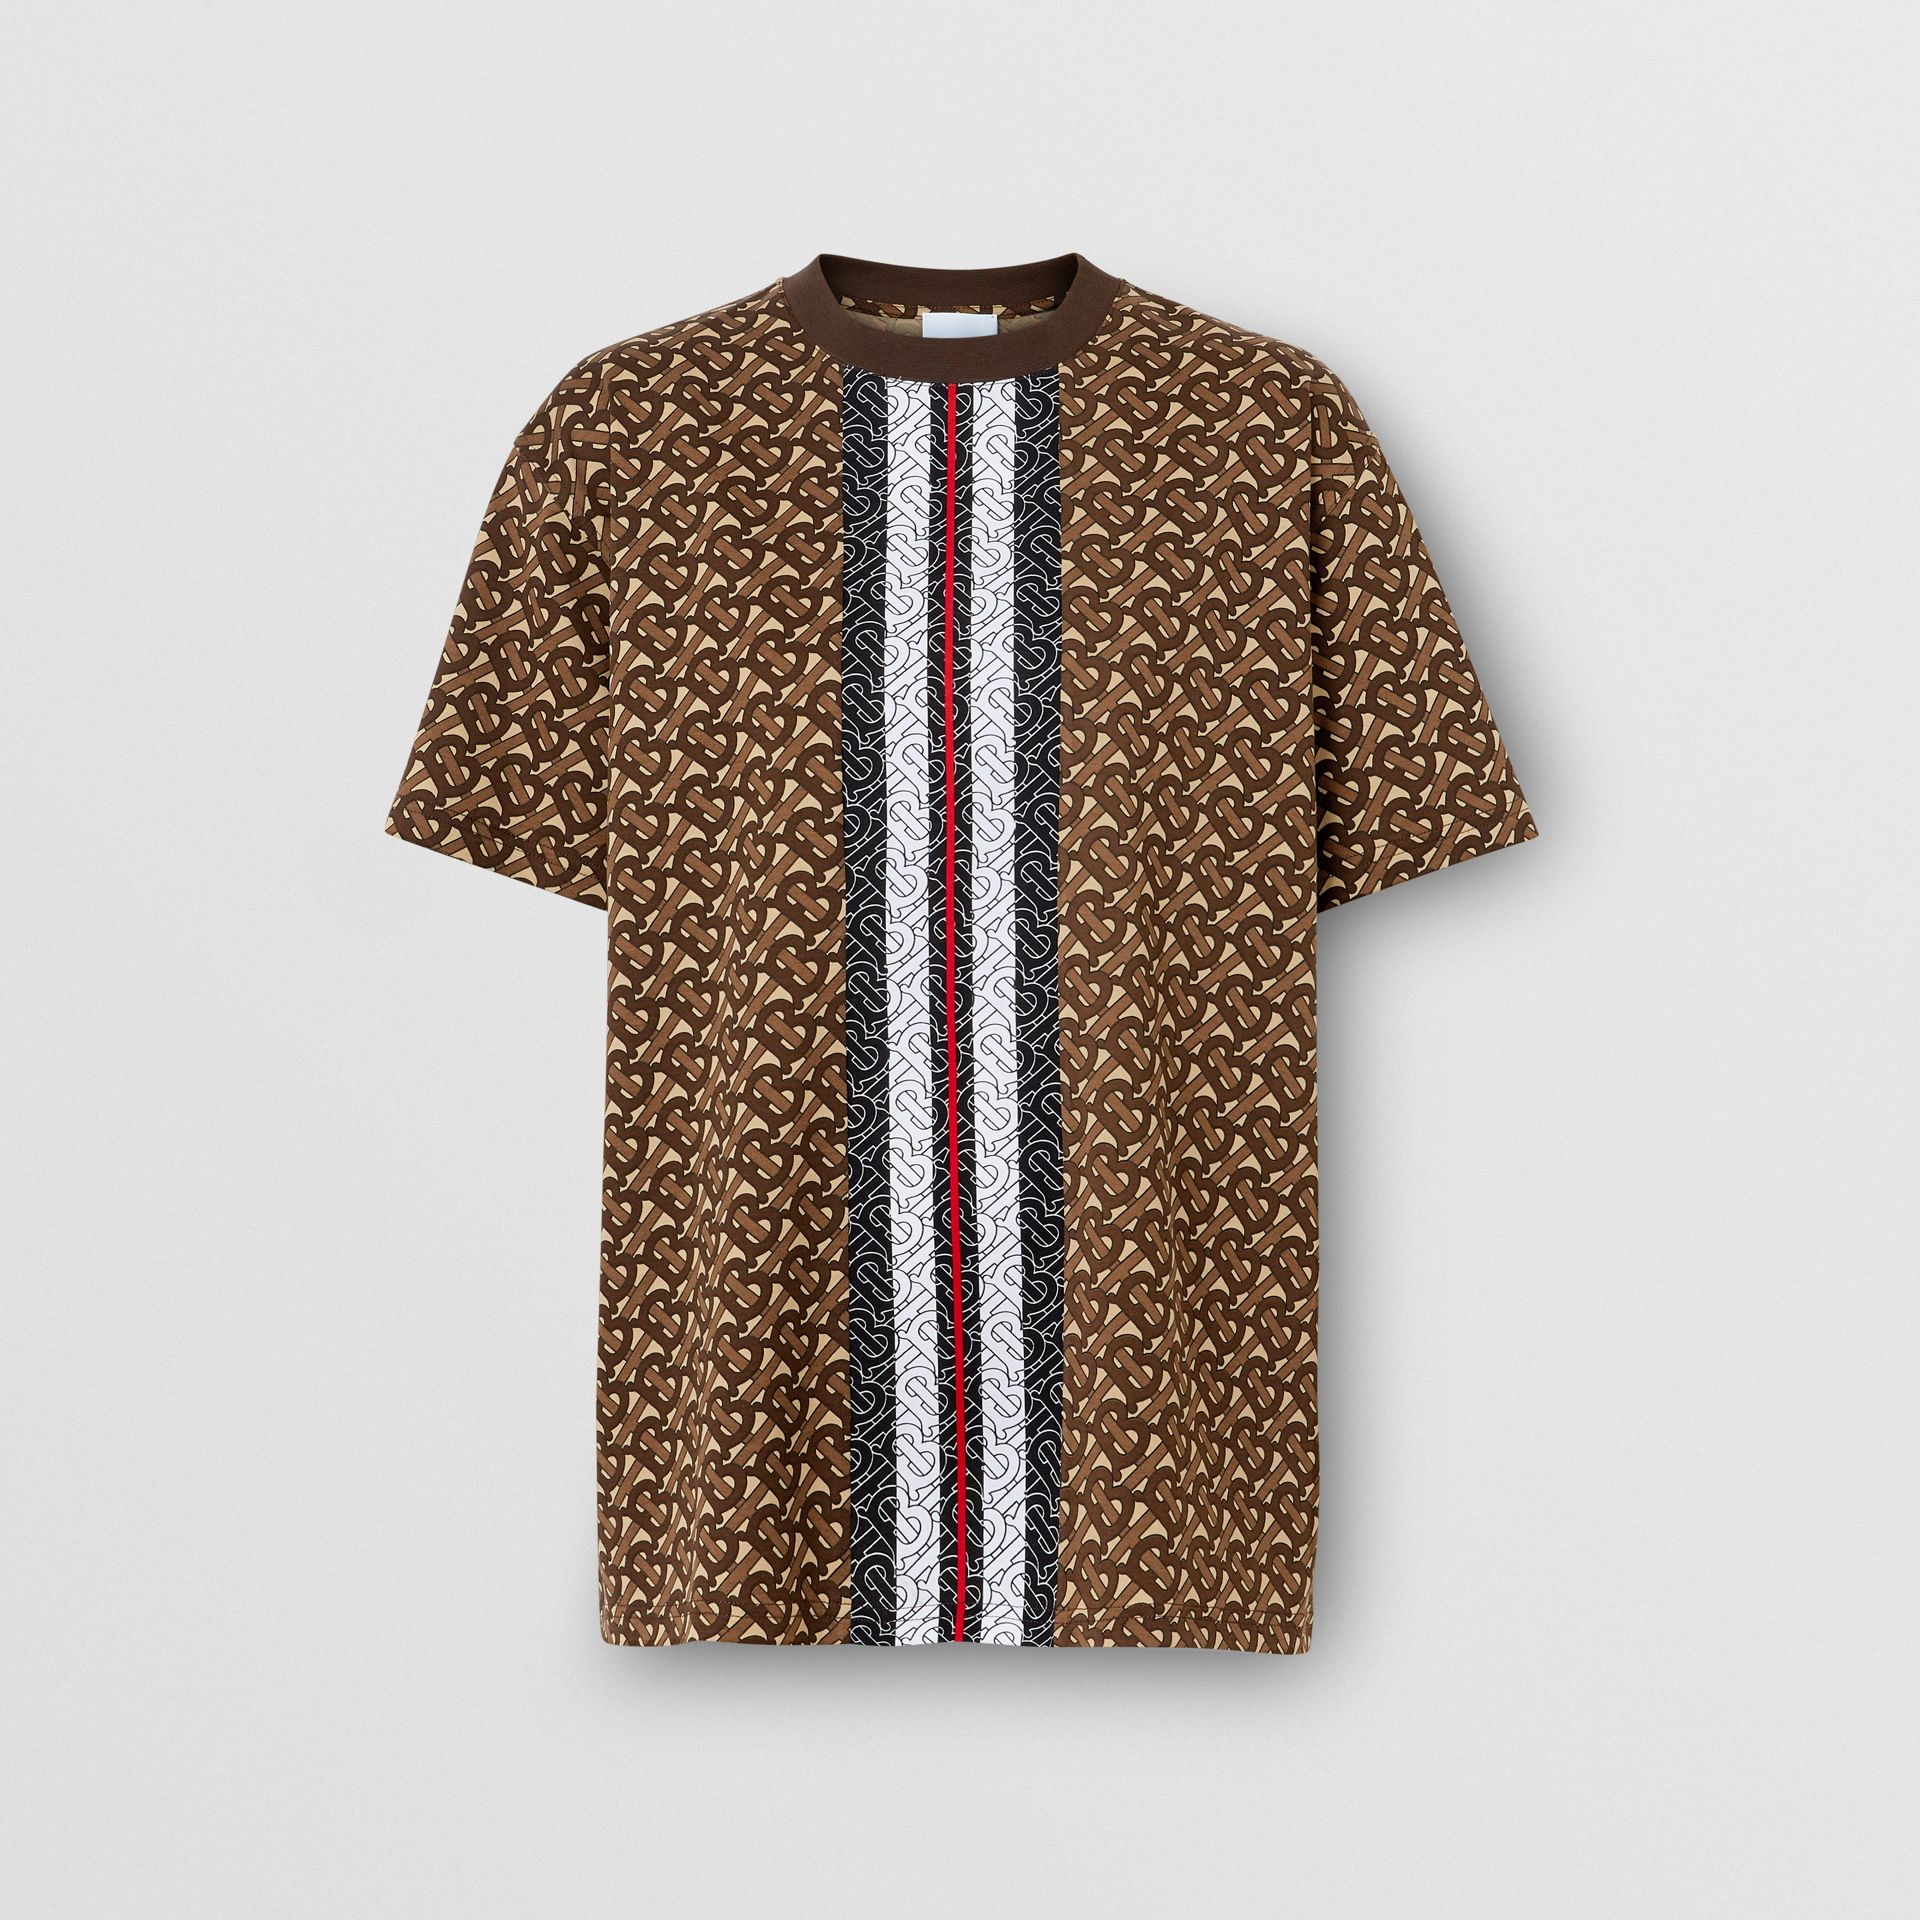 Monogram Stripe Print Cotton Oversized T-shirt in Bridle Brown - Women | Burberry Singapore - gallery image 3